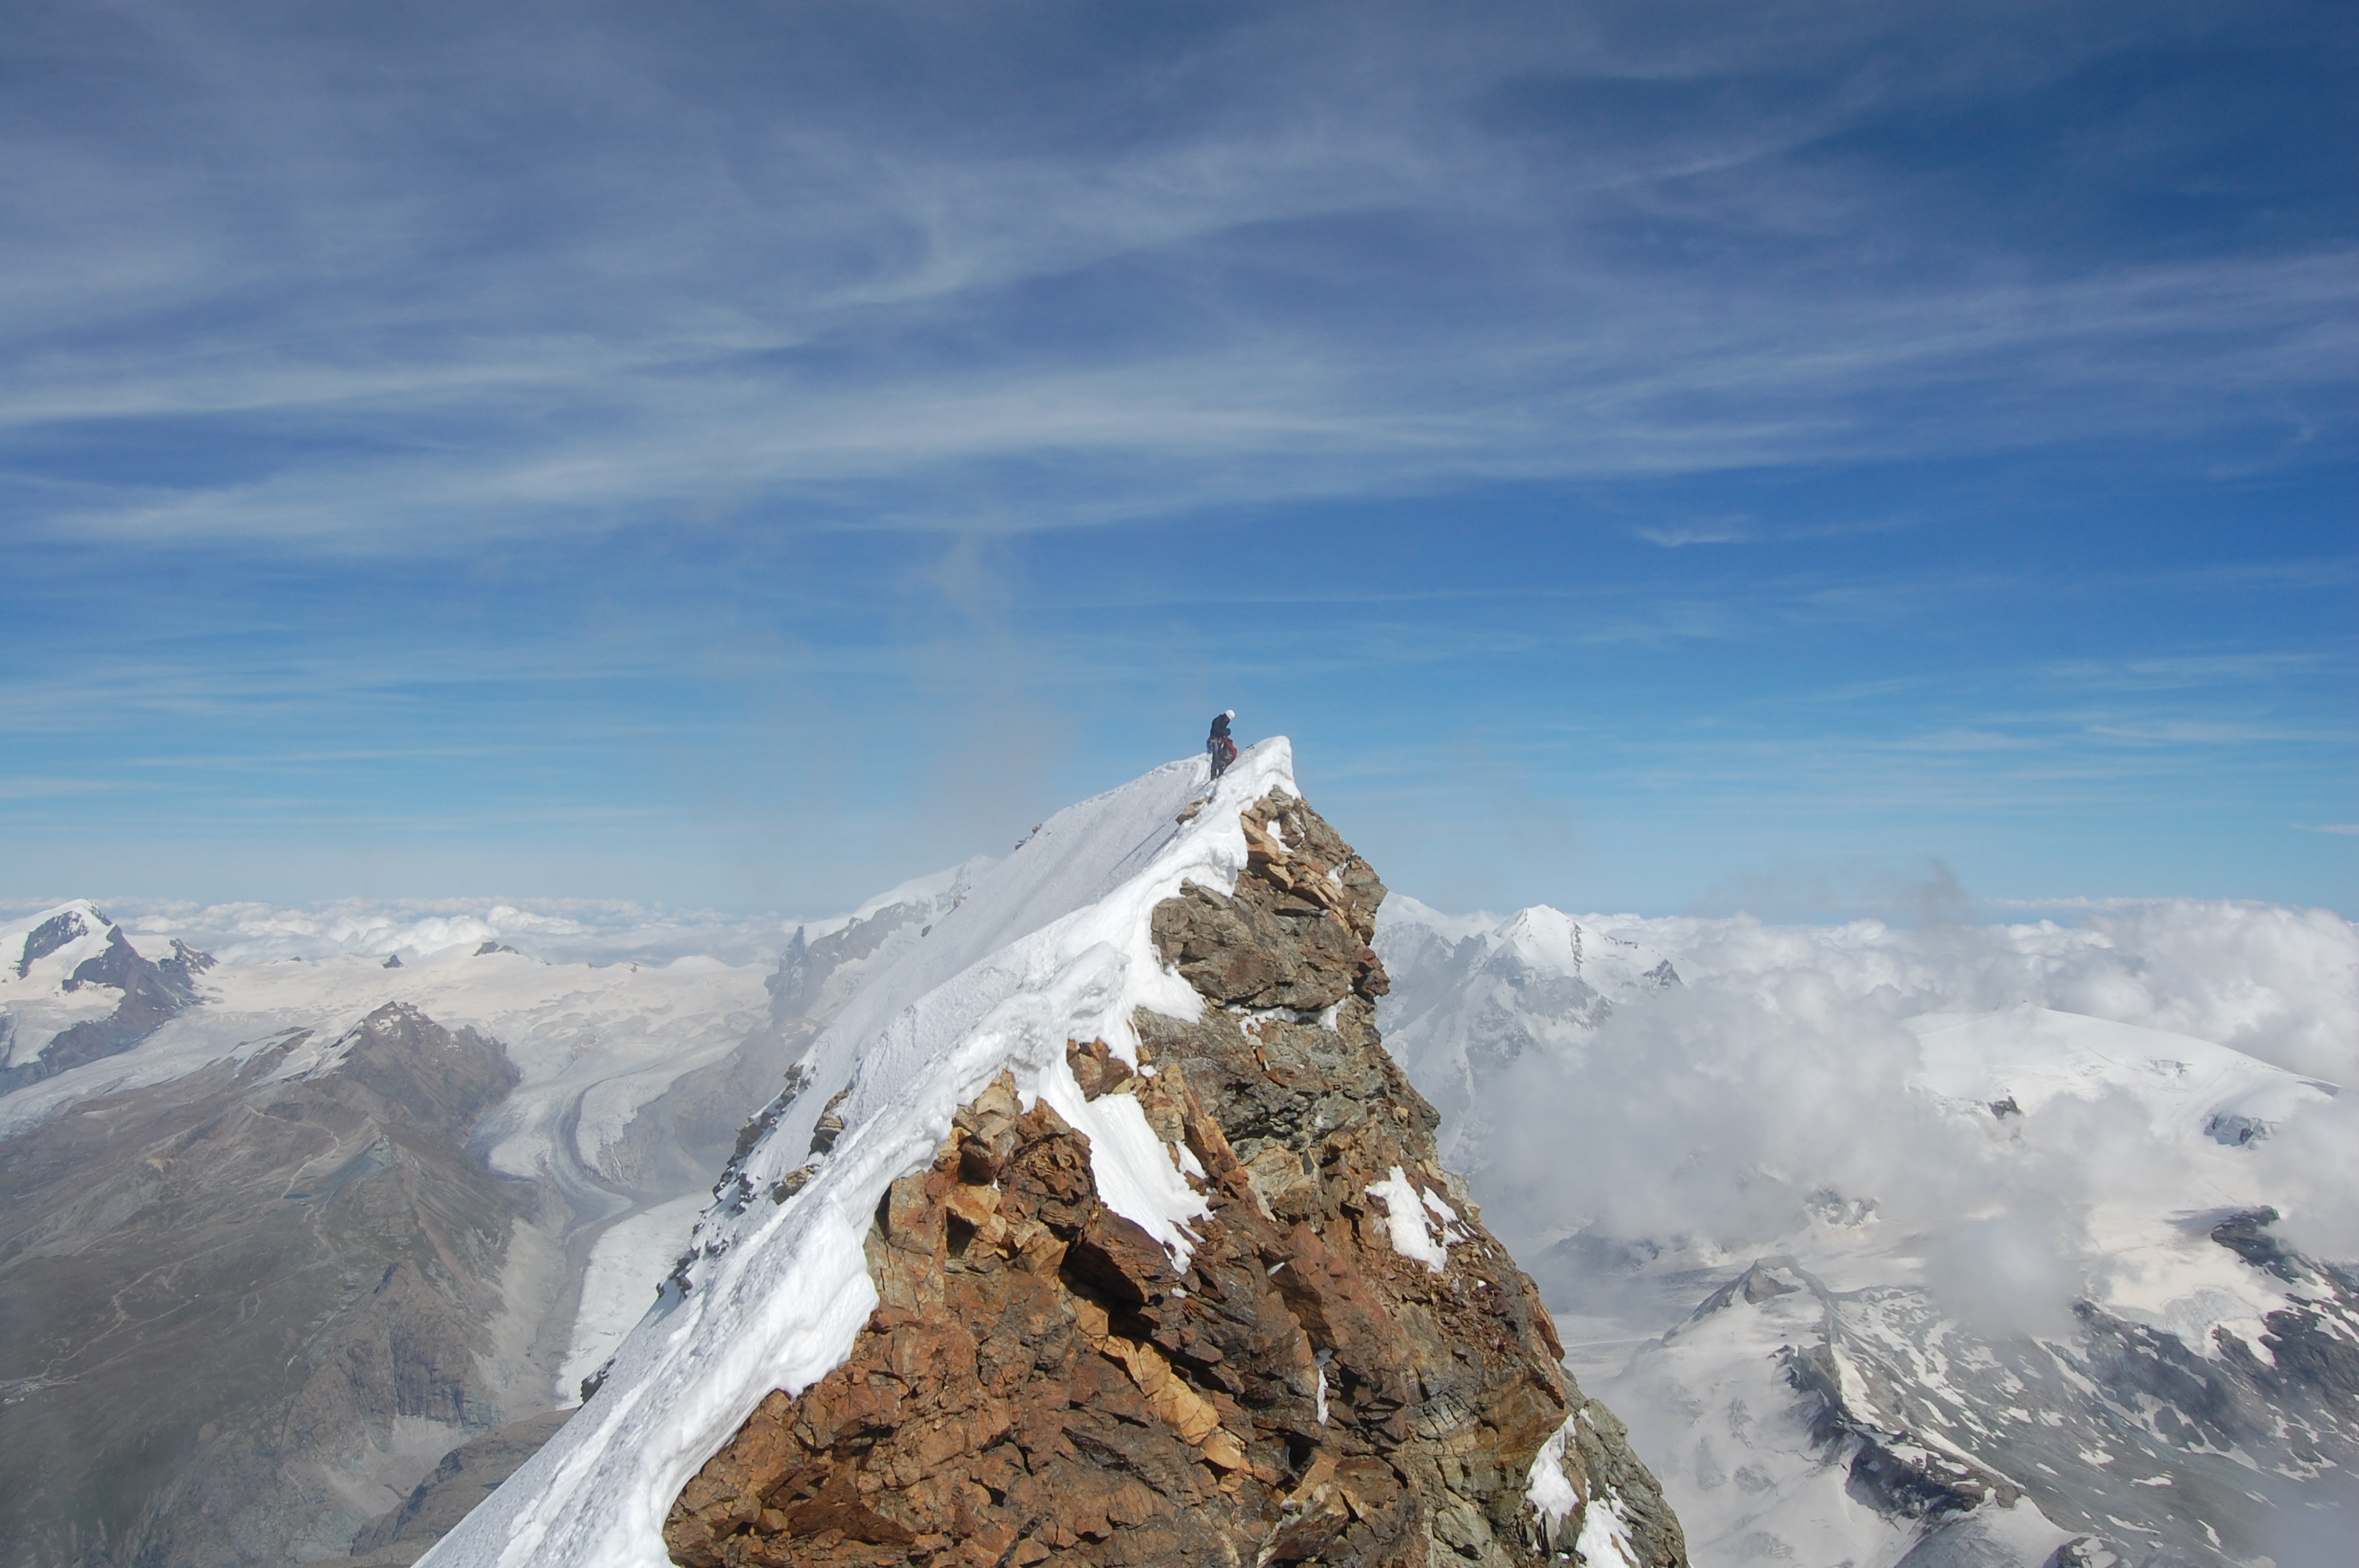 File:Summit of the Matterhorn.jpg - Wikimedia Commons